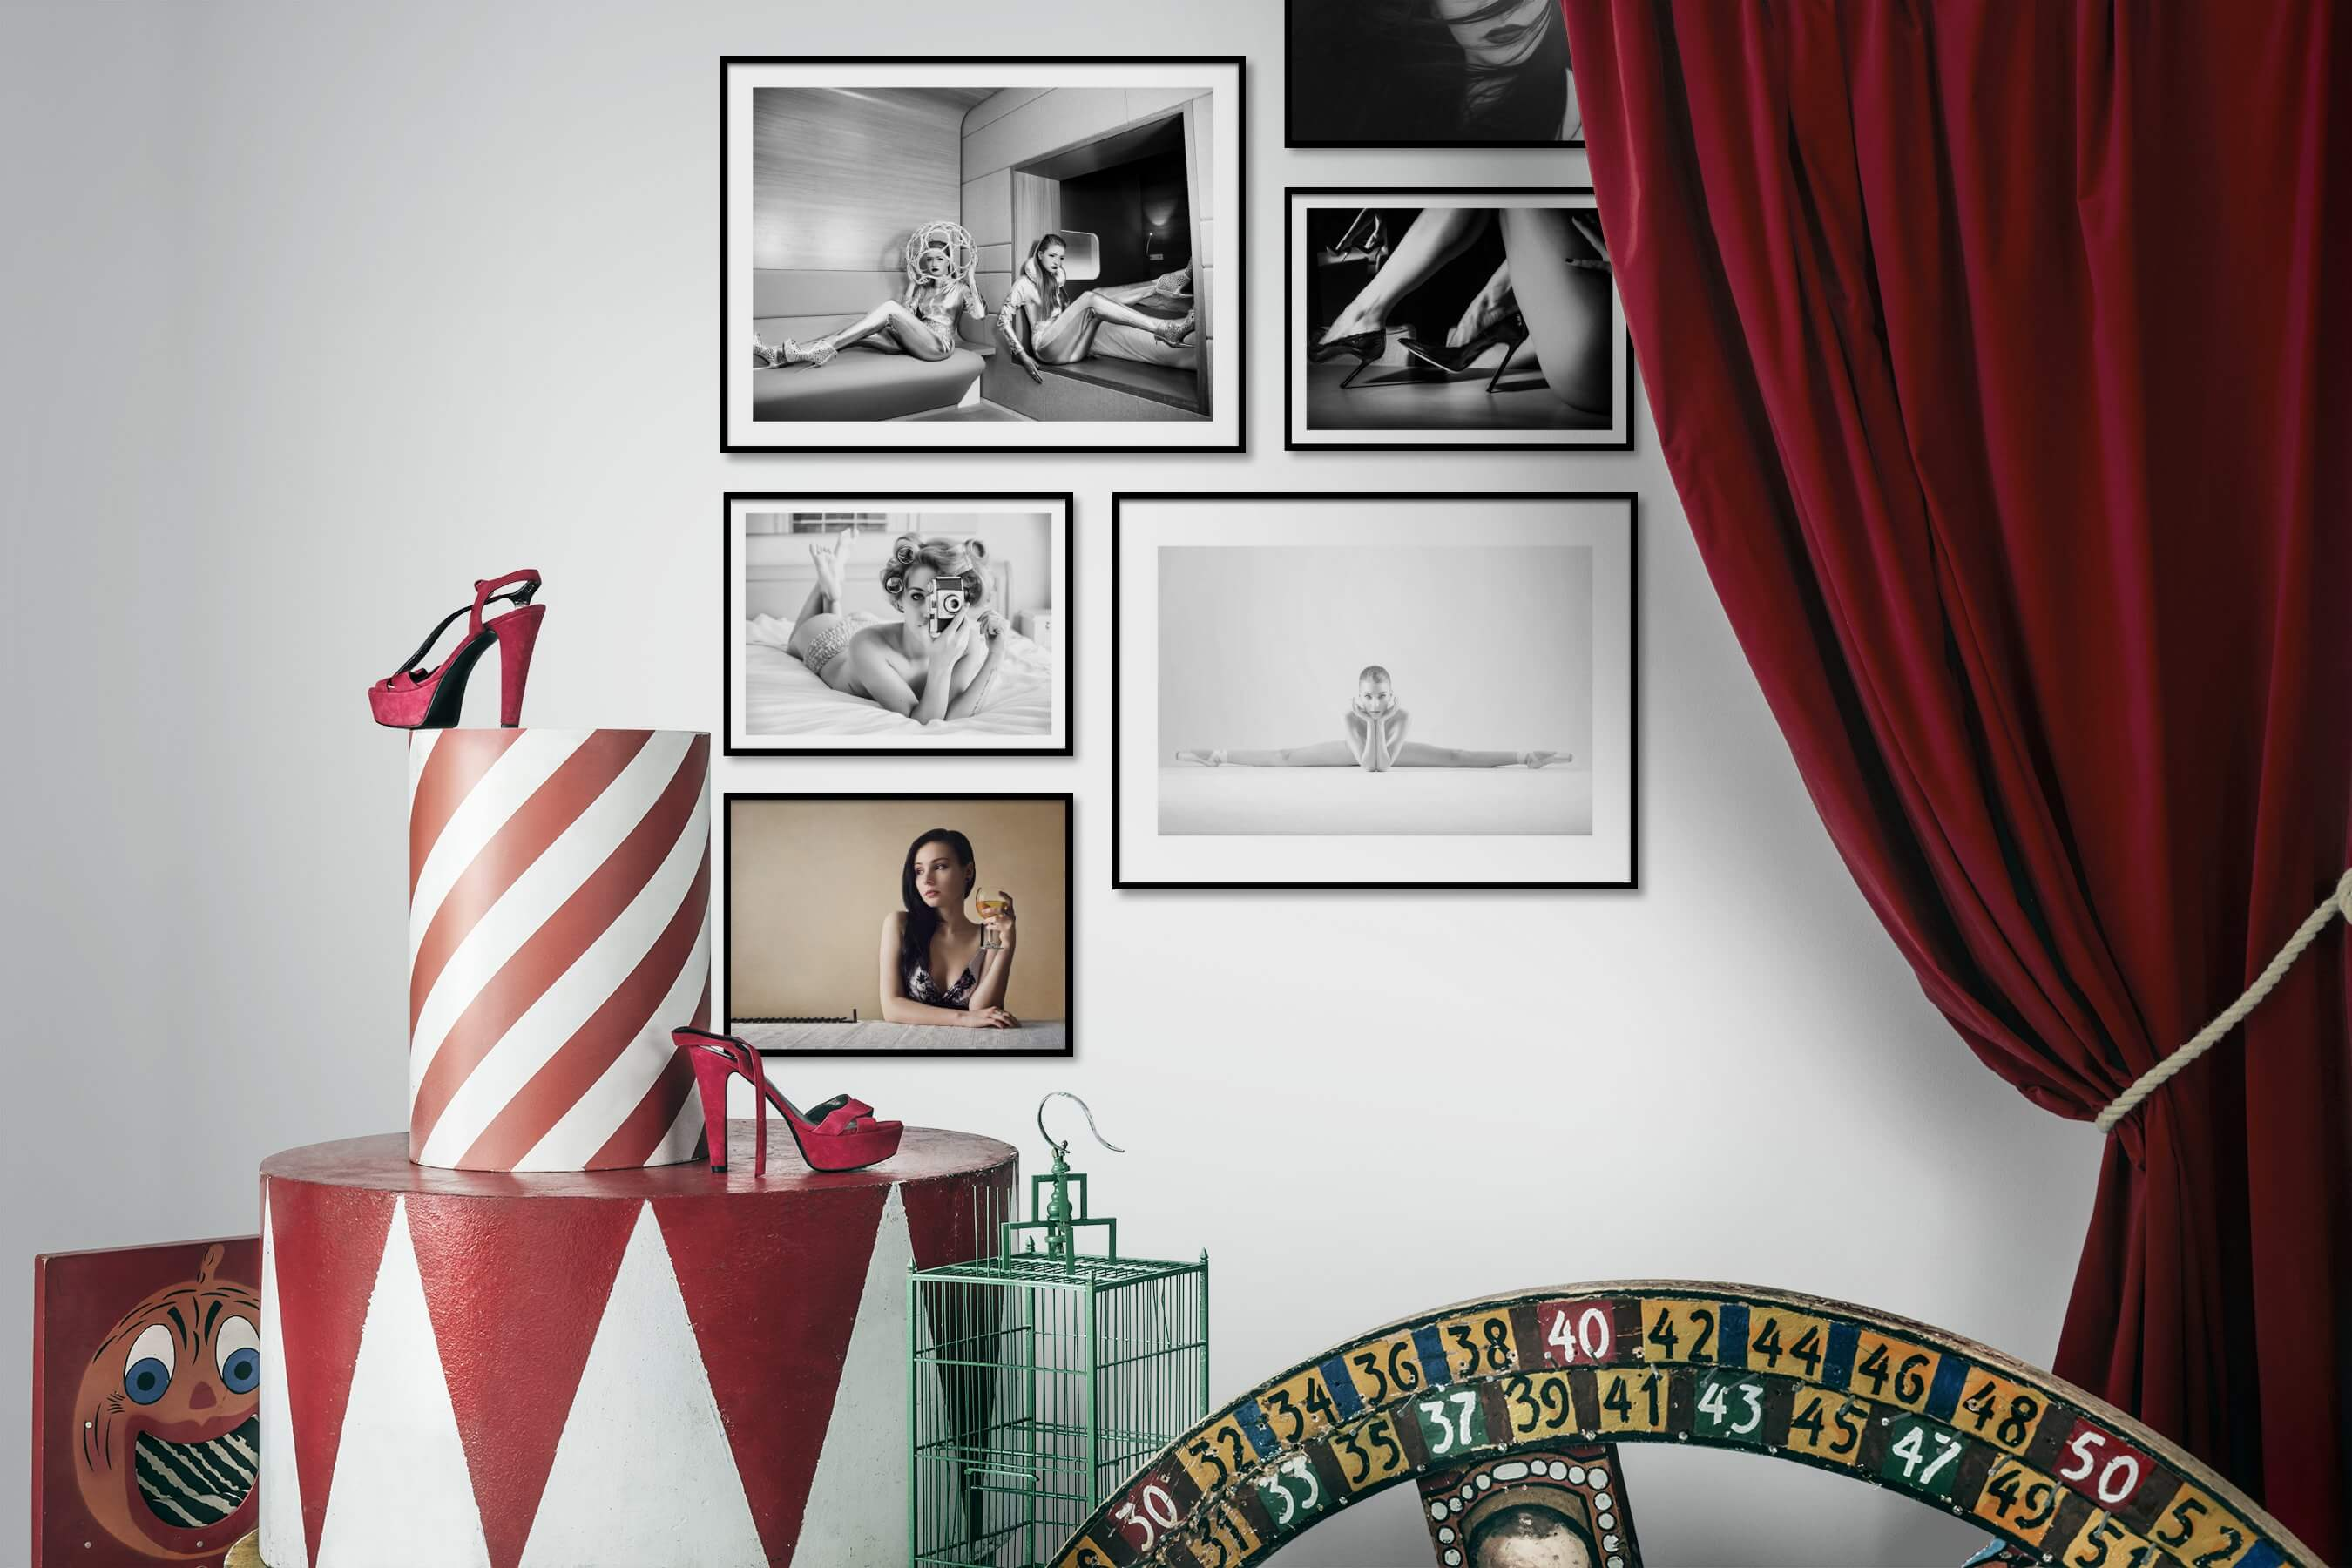 Gallery wall idea with six framed pictures arranged on a wall depicting Fashion & Beauty, Black & White, Vintage, For the Minimalist, and Artsy